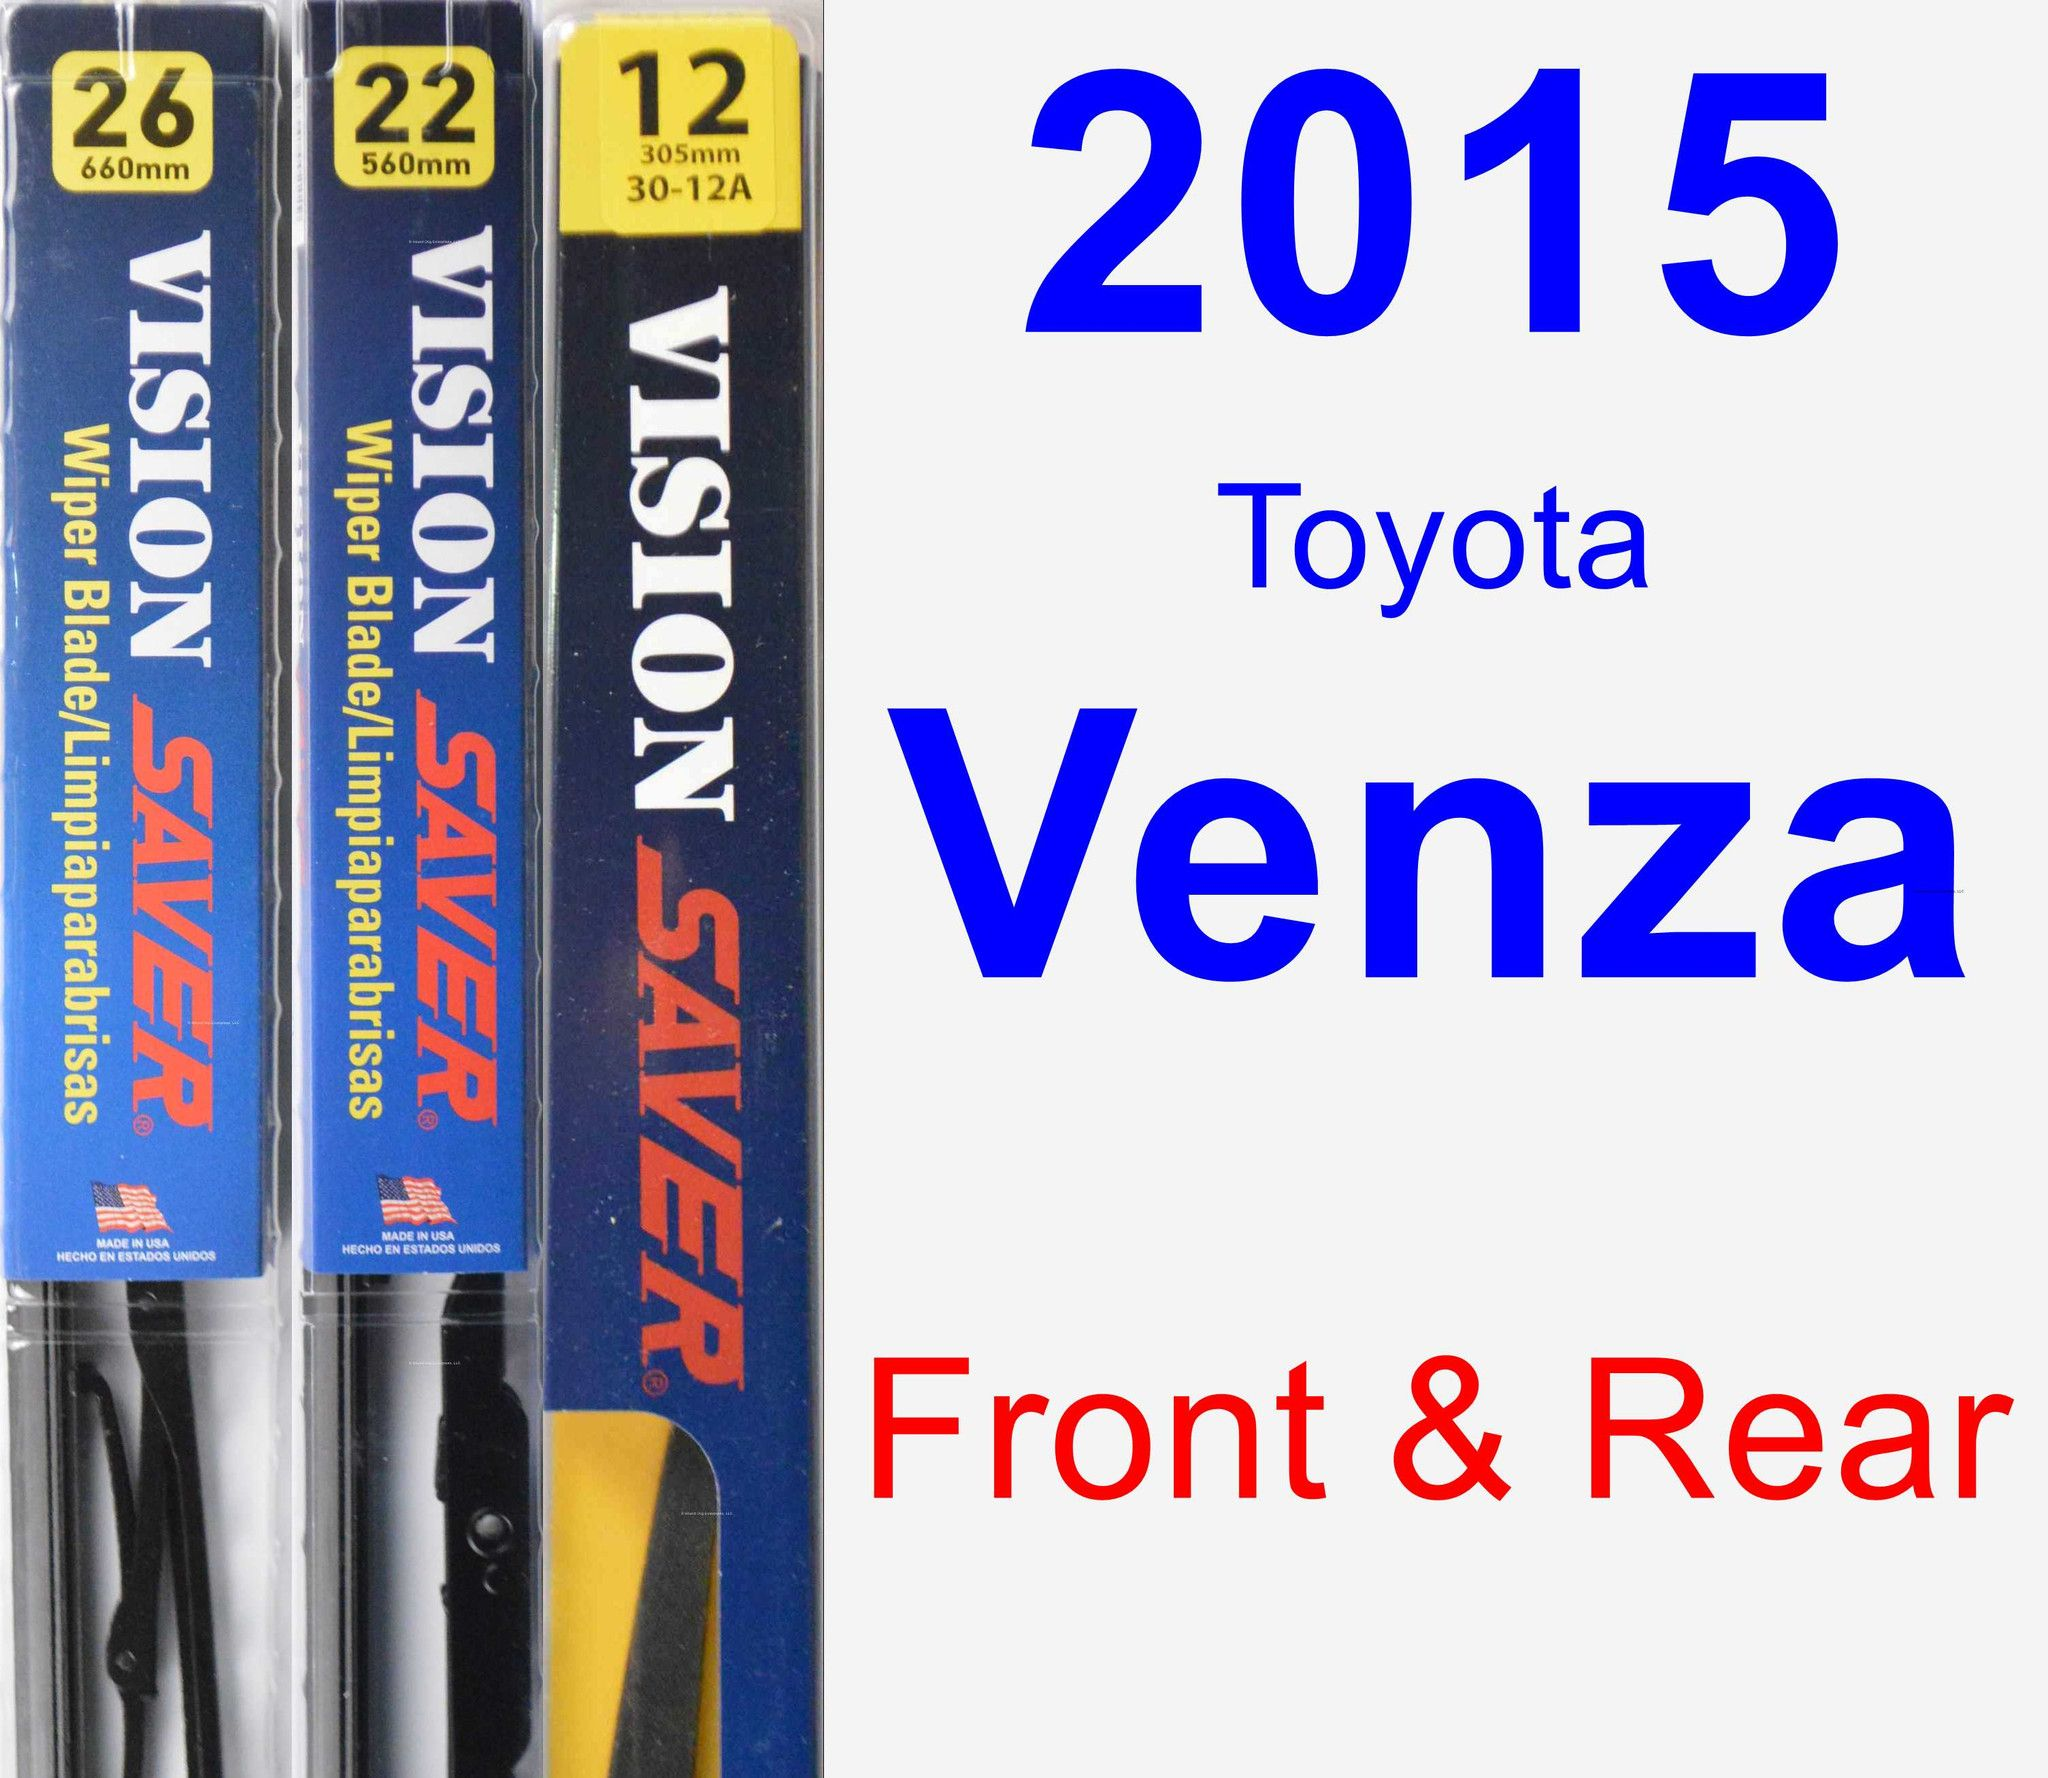 Front & Rear Wiper Blade Pack For 2015 Toyota Venza